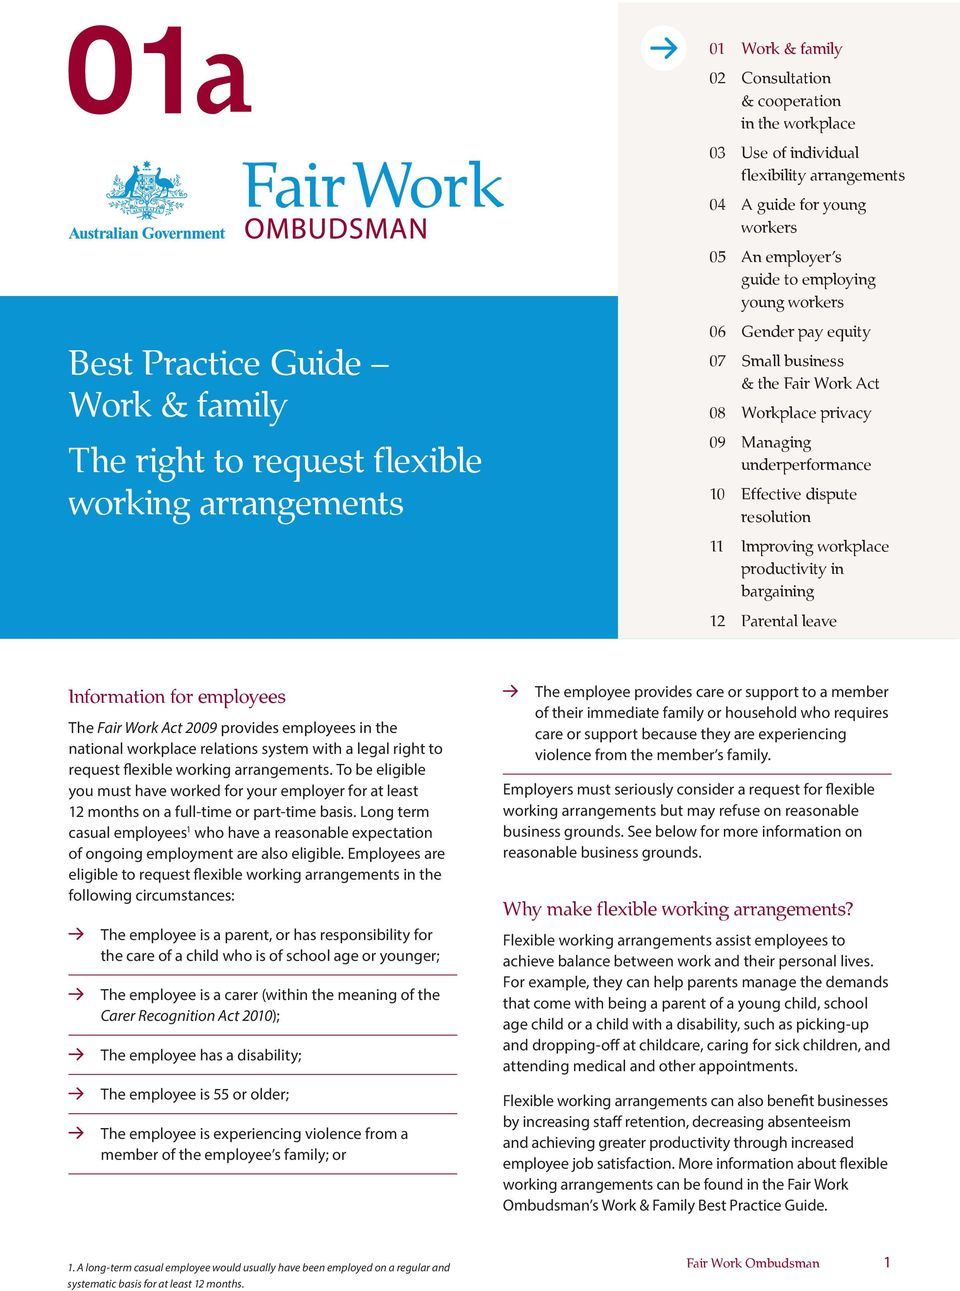 dispute resolution 11 Improving workplace productivity in bargaining 12 Parental leave Information for employees The Fair Work Act 2009 provides employees in the national workplace relations system